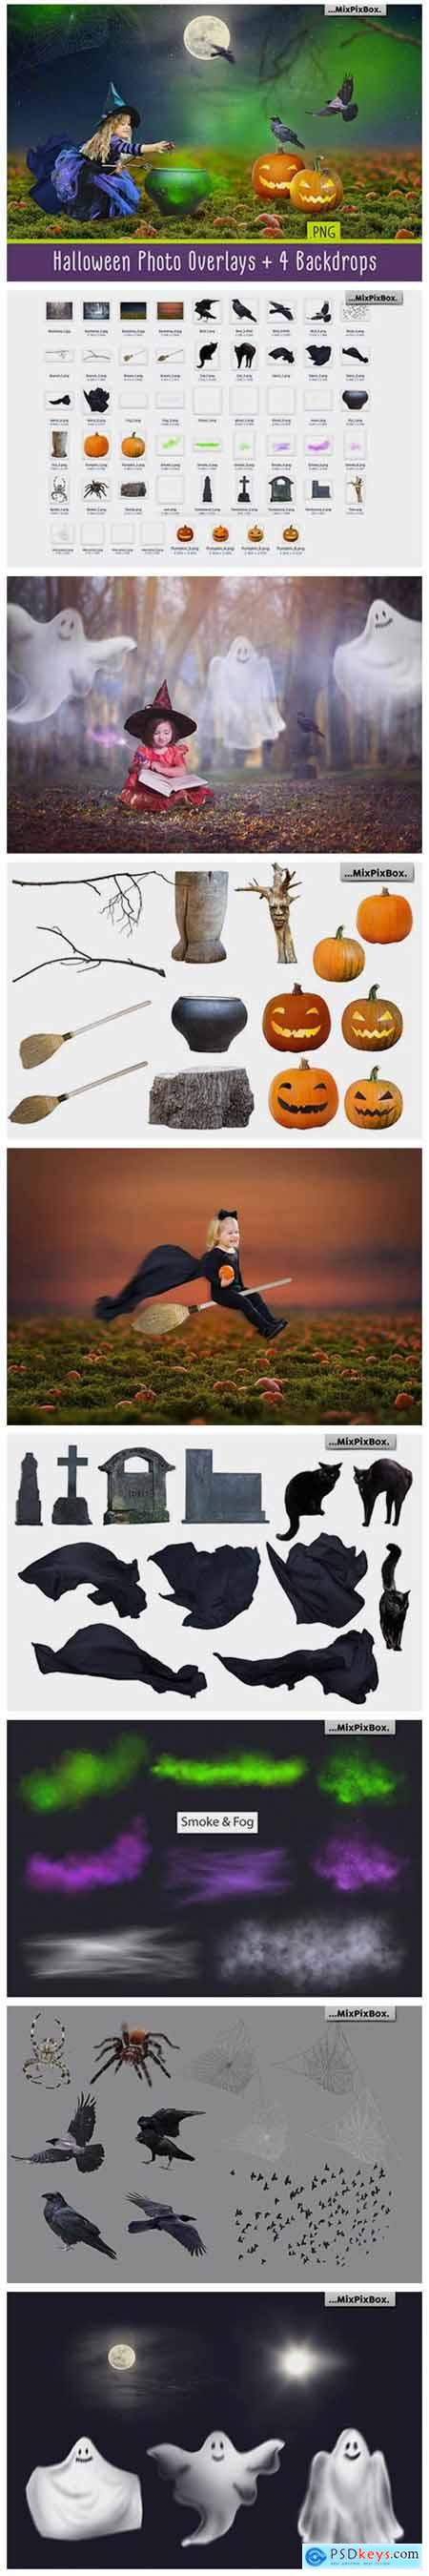 Halloween Photo Overlays 1786549